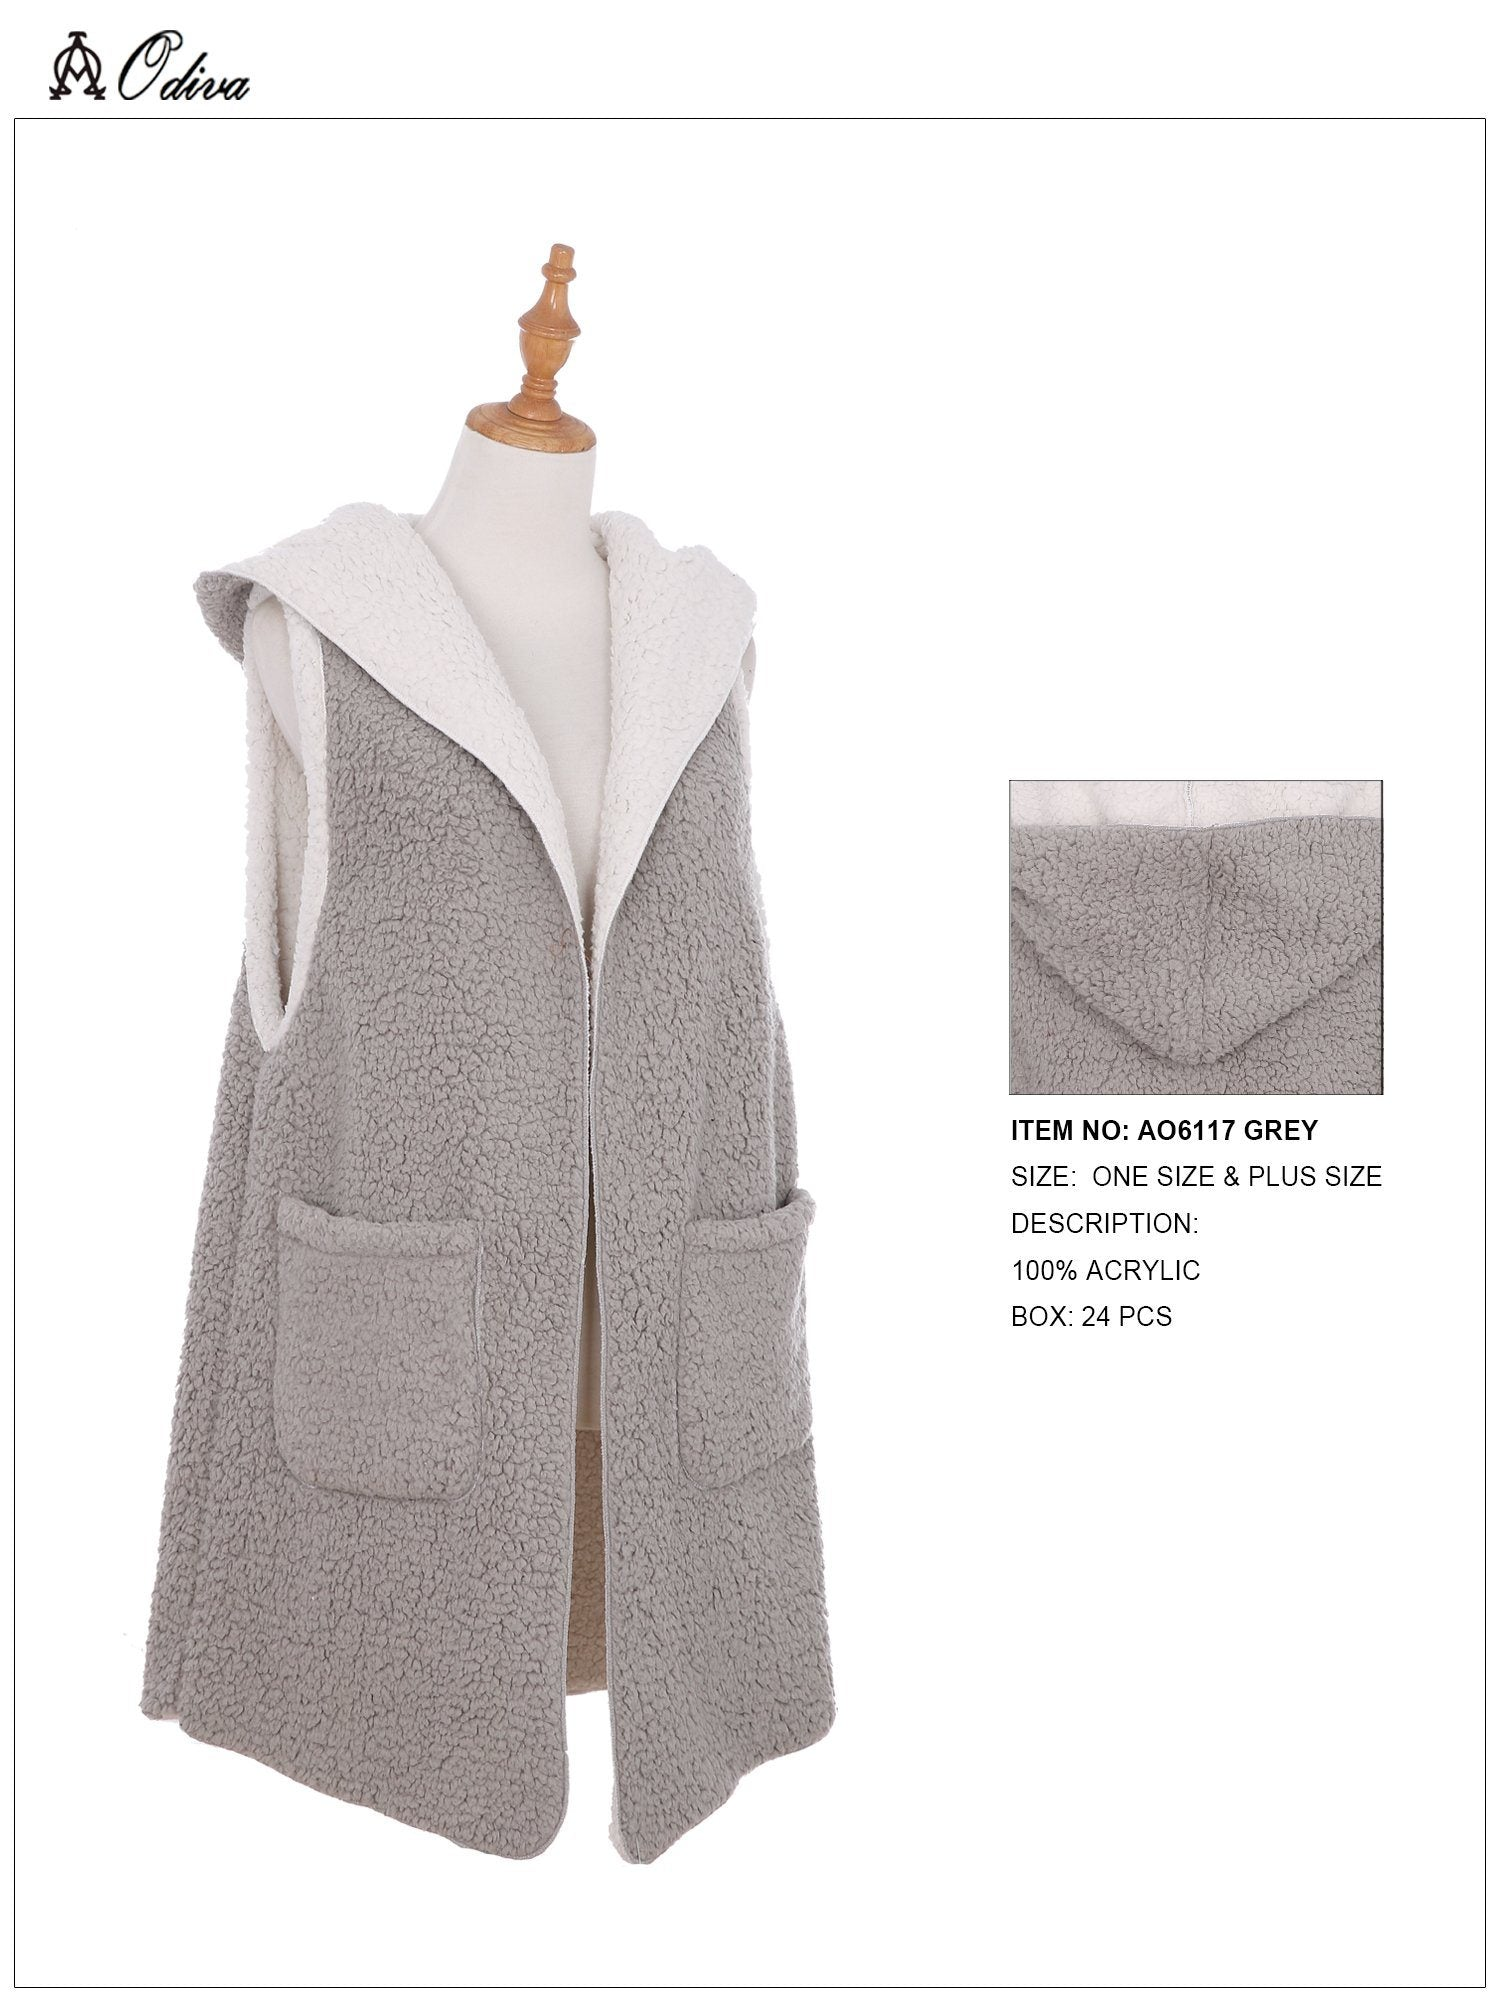 A&O International Hooded Vest With Pockets #AO6117 (PC)